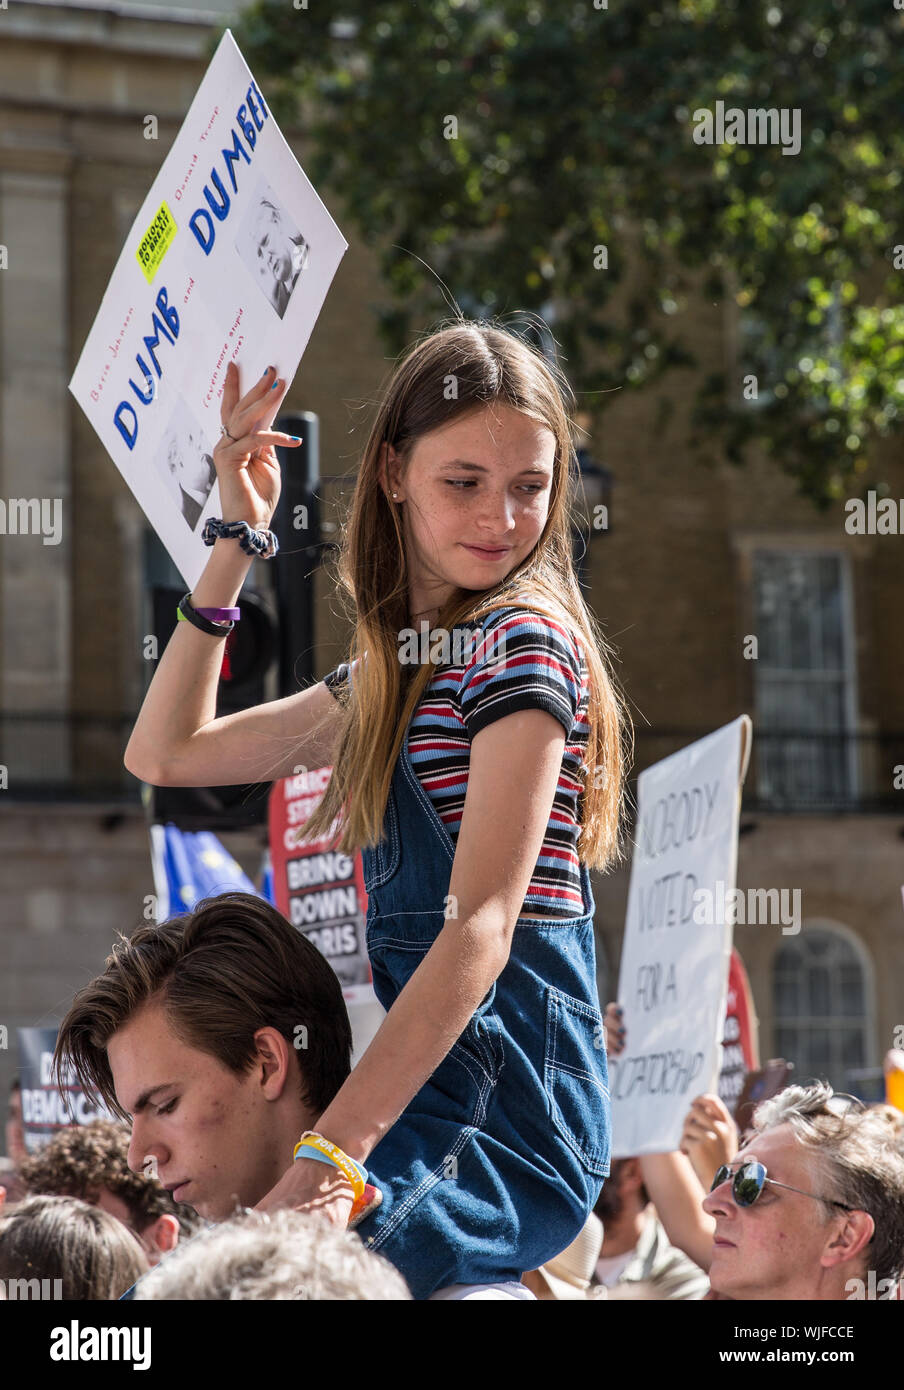 Pro Democracy rally, London 31st Aug 2019 Stock Photo